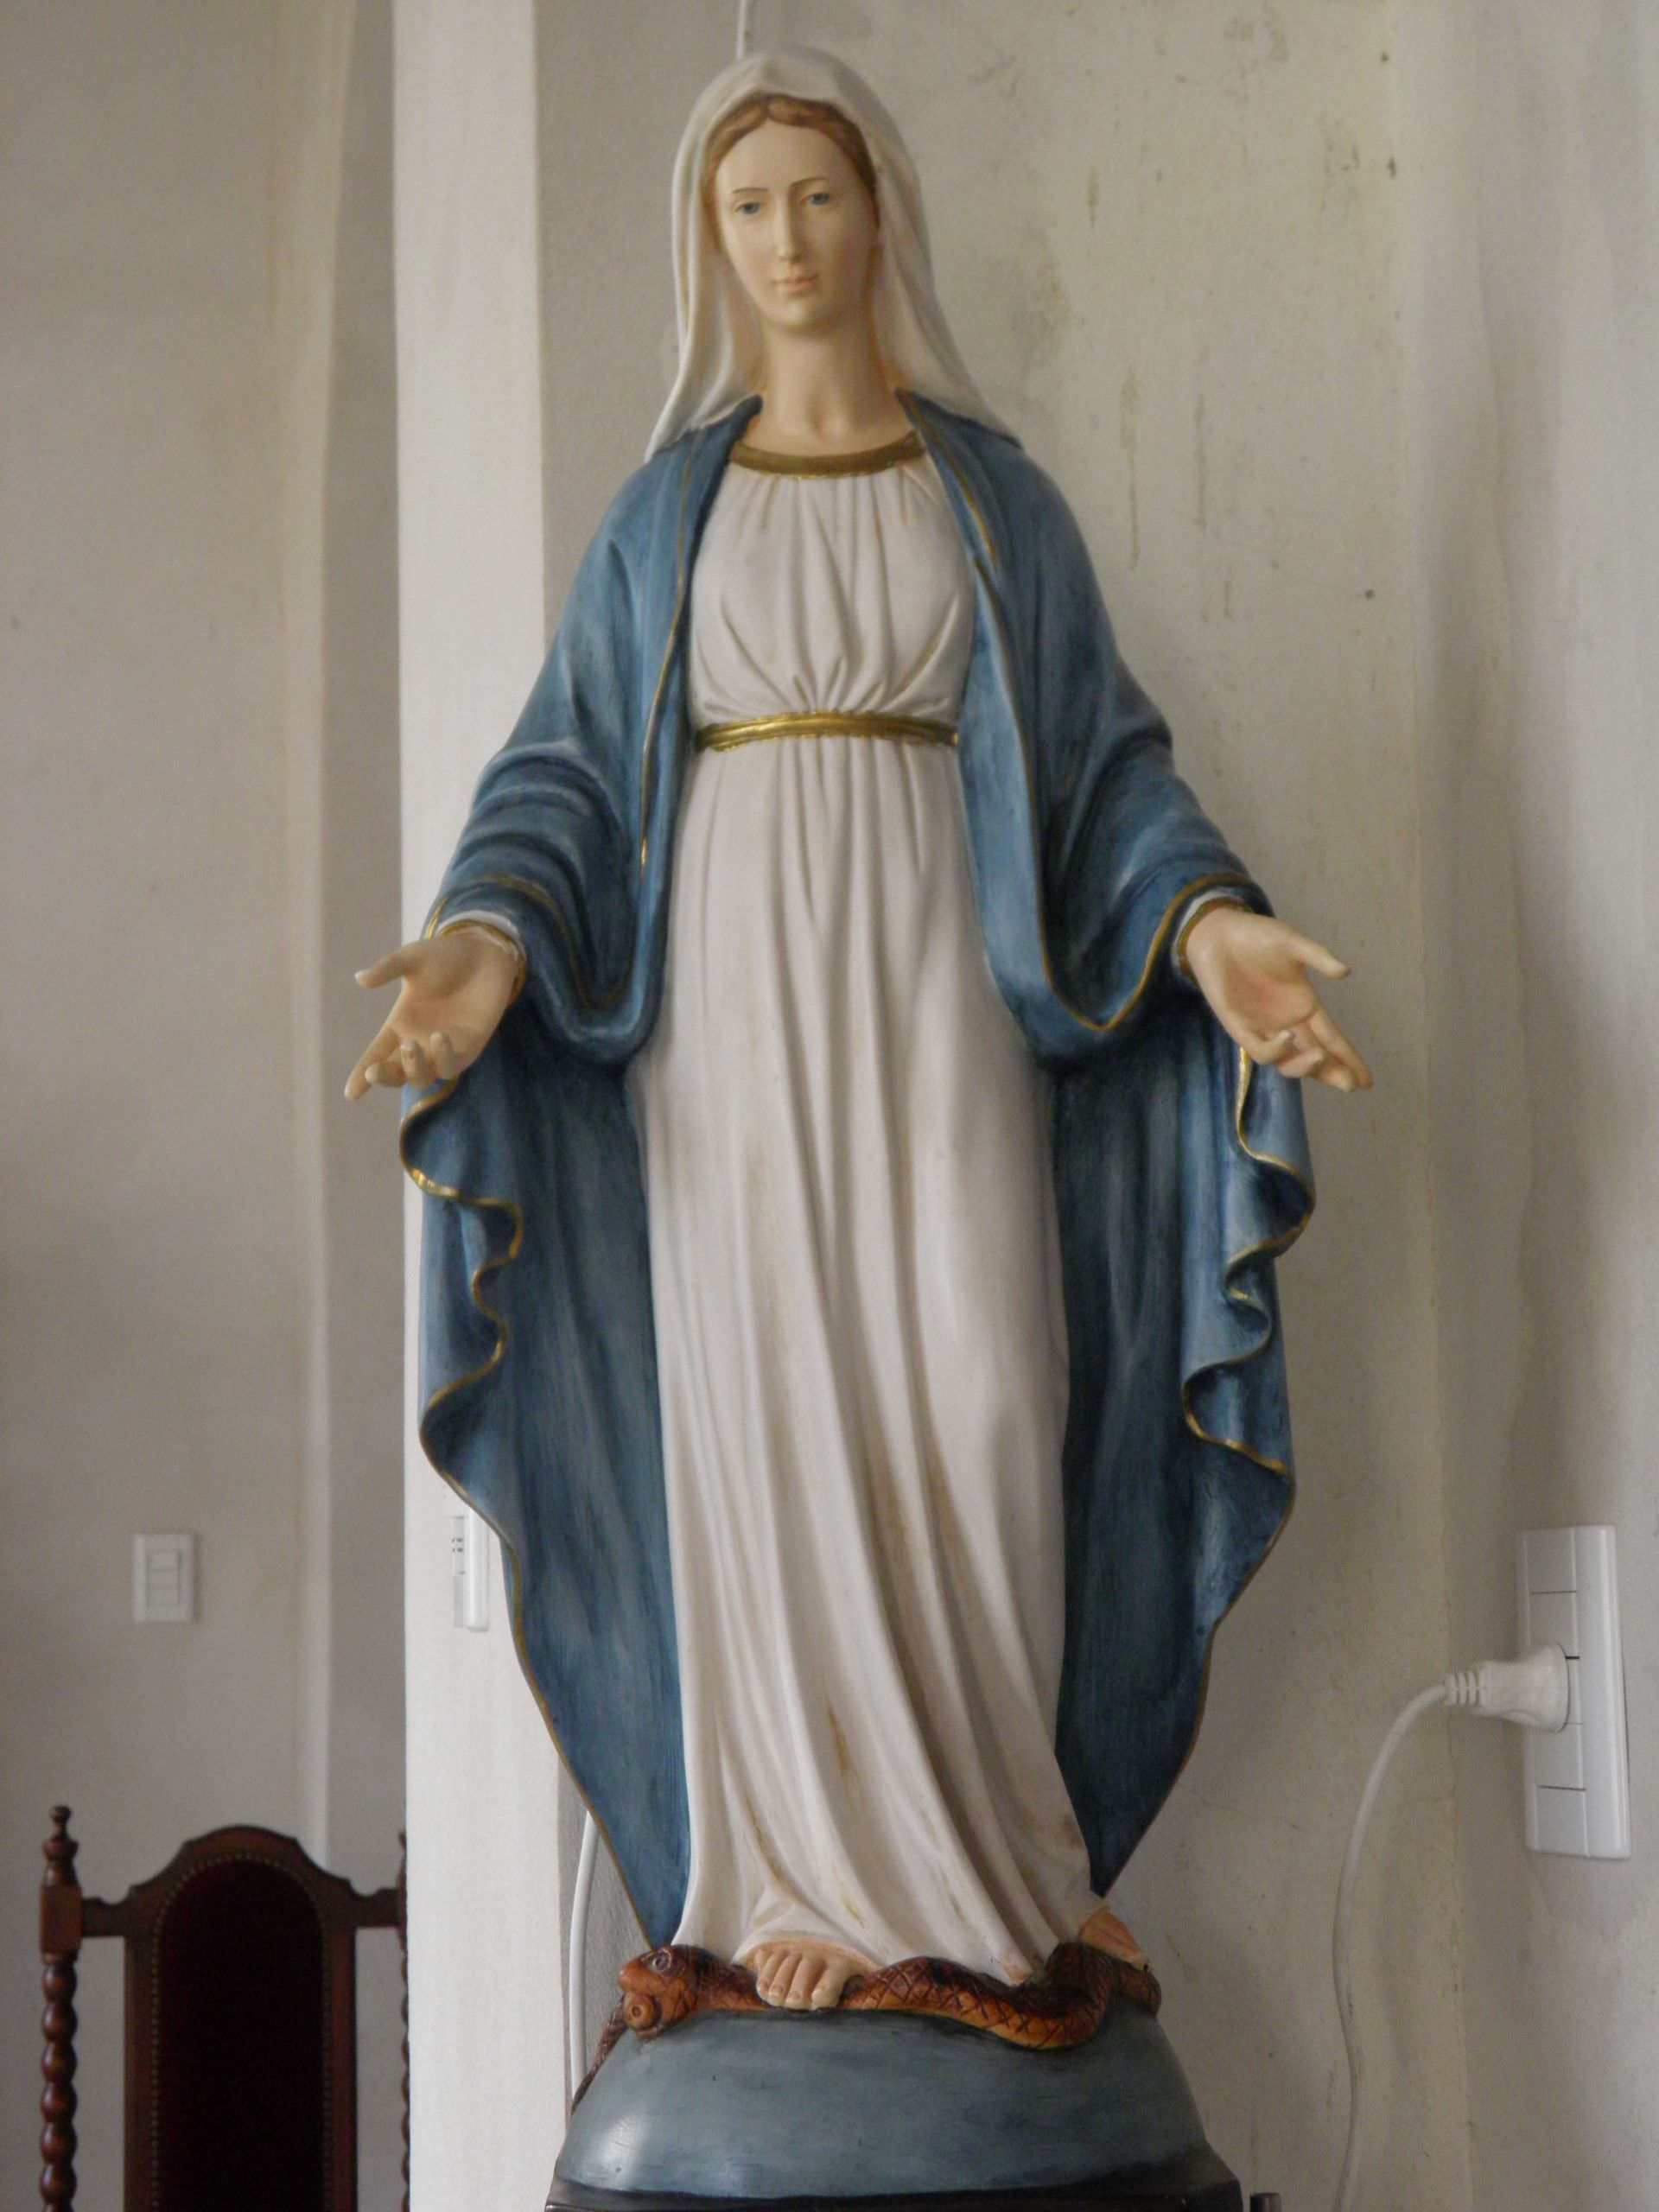 virgin of the miraculous medal, virgin mary, our lady of the miraculous medal, marian advocation